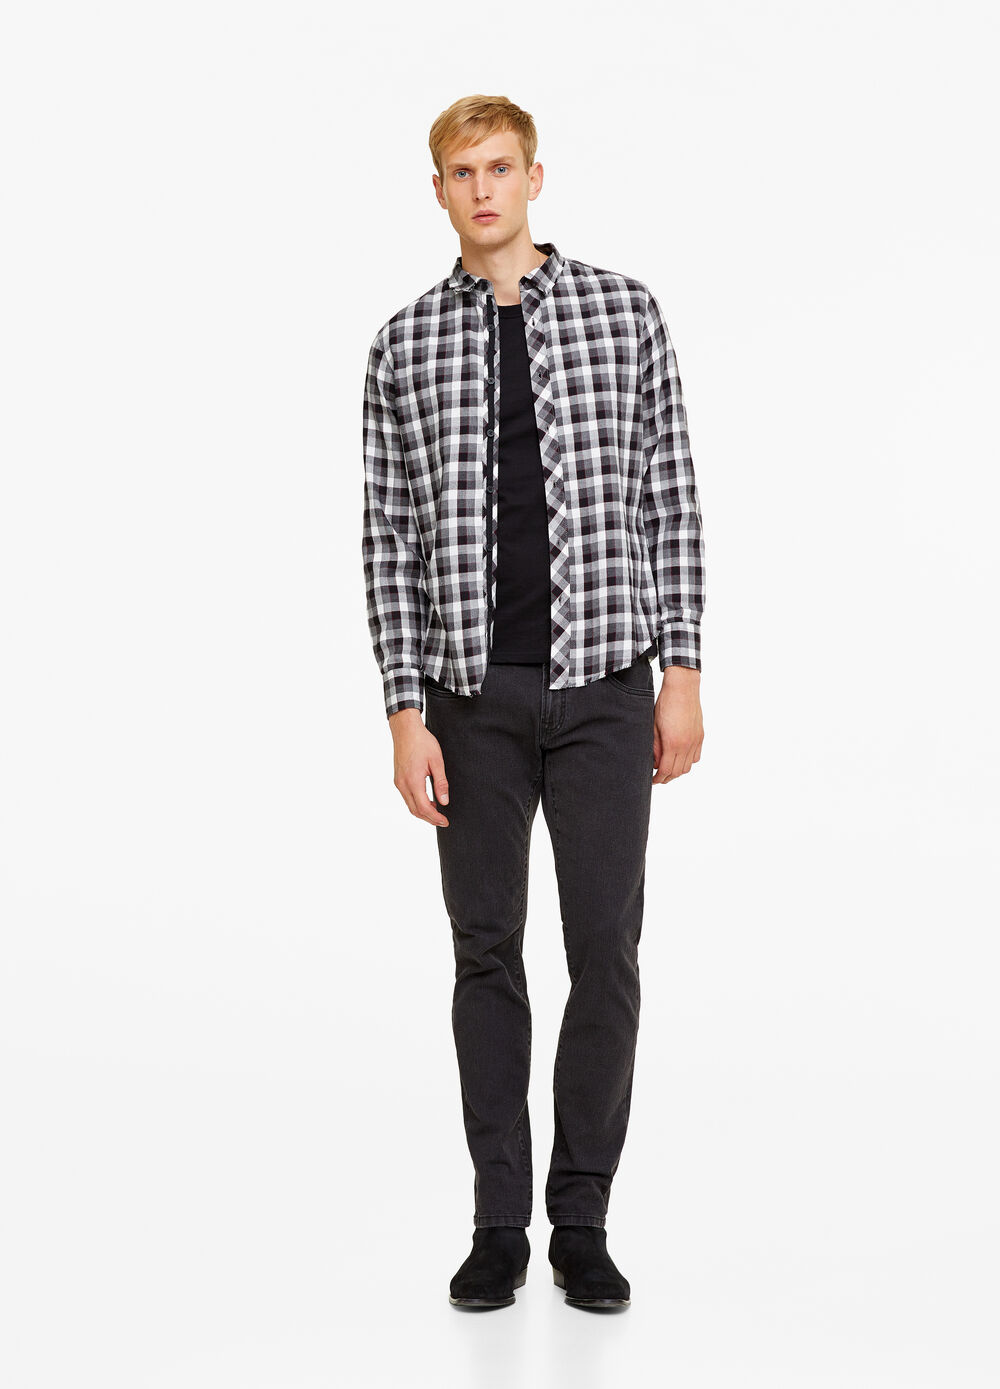 100% cotton, slim-fit shirt with check pattern